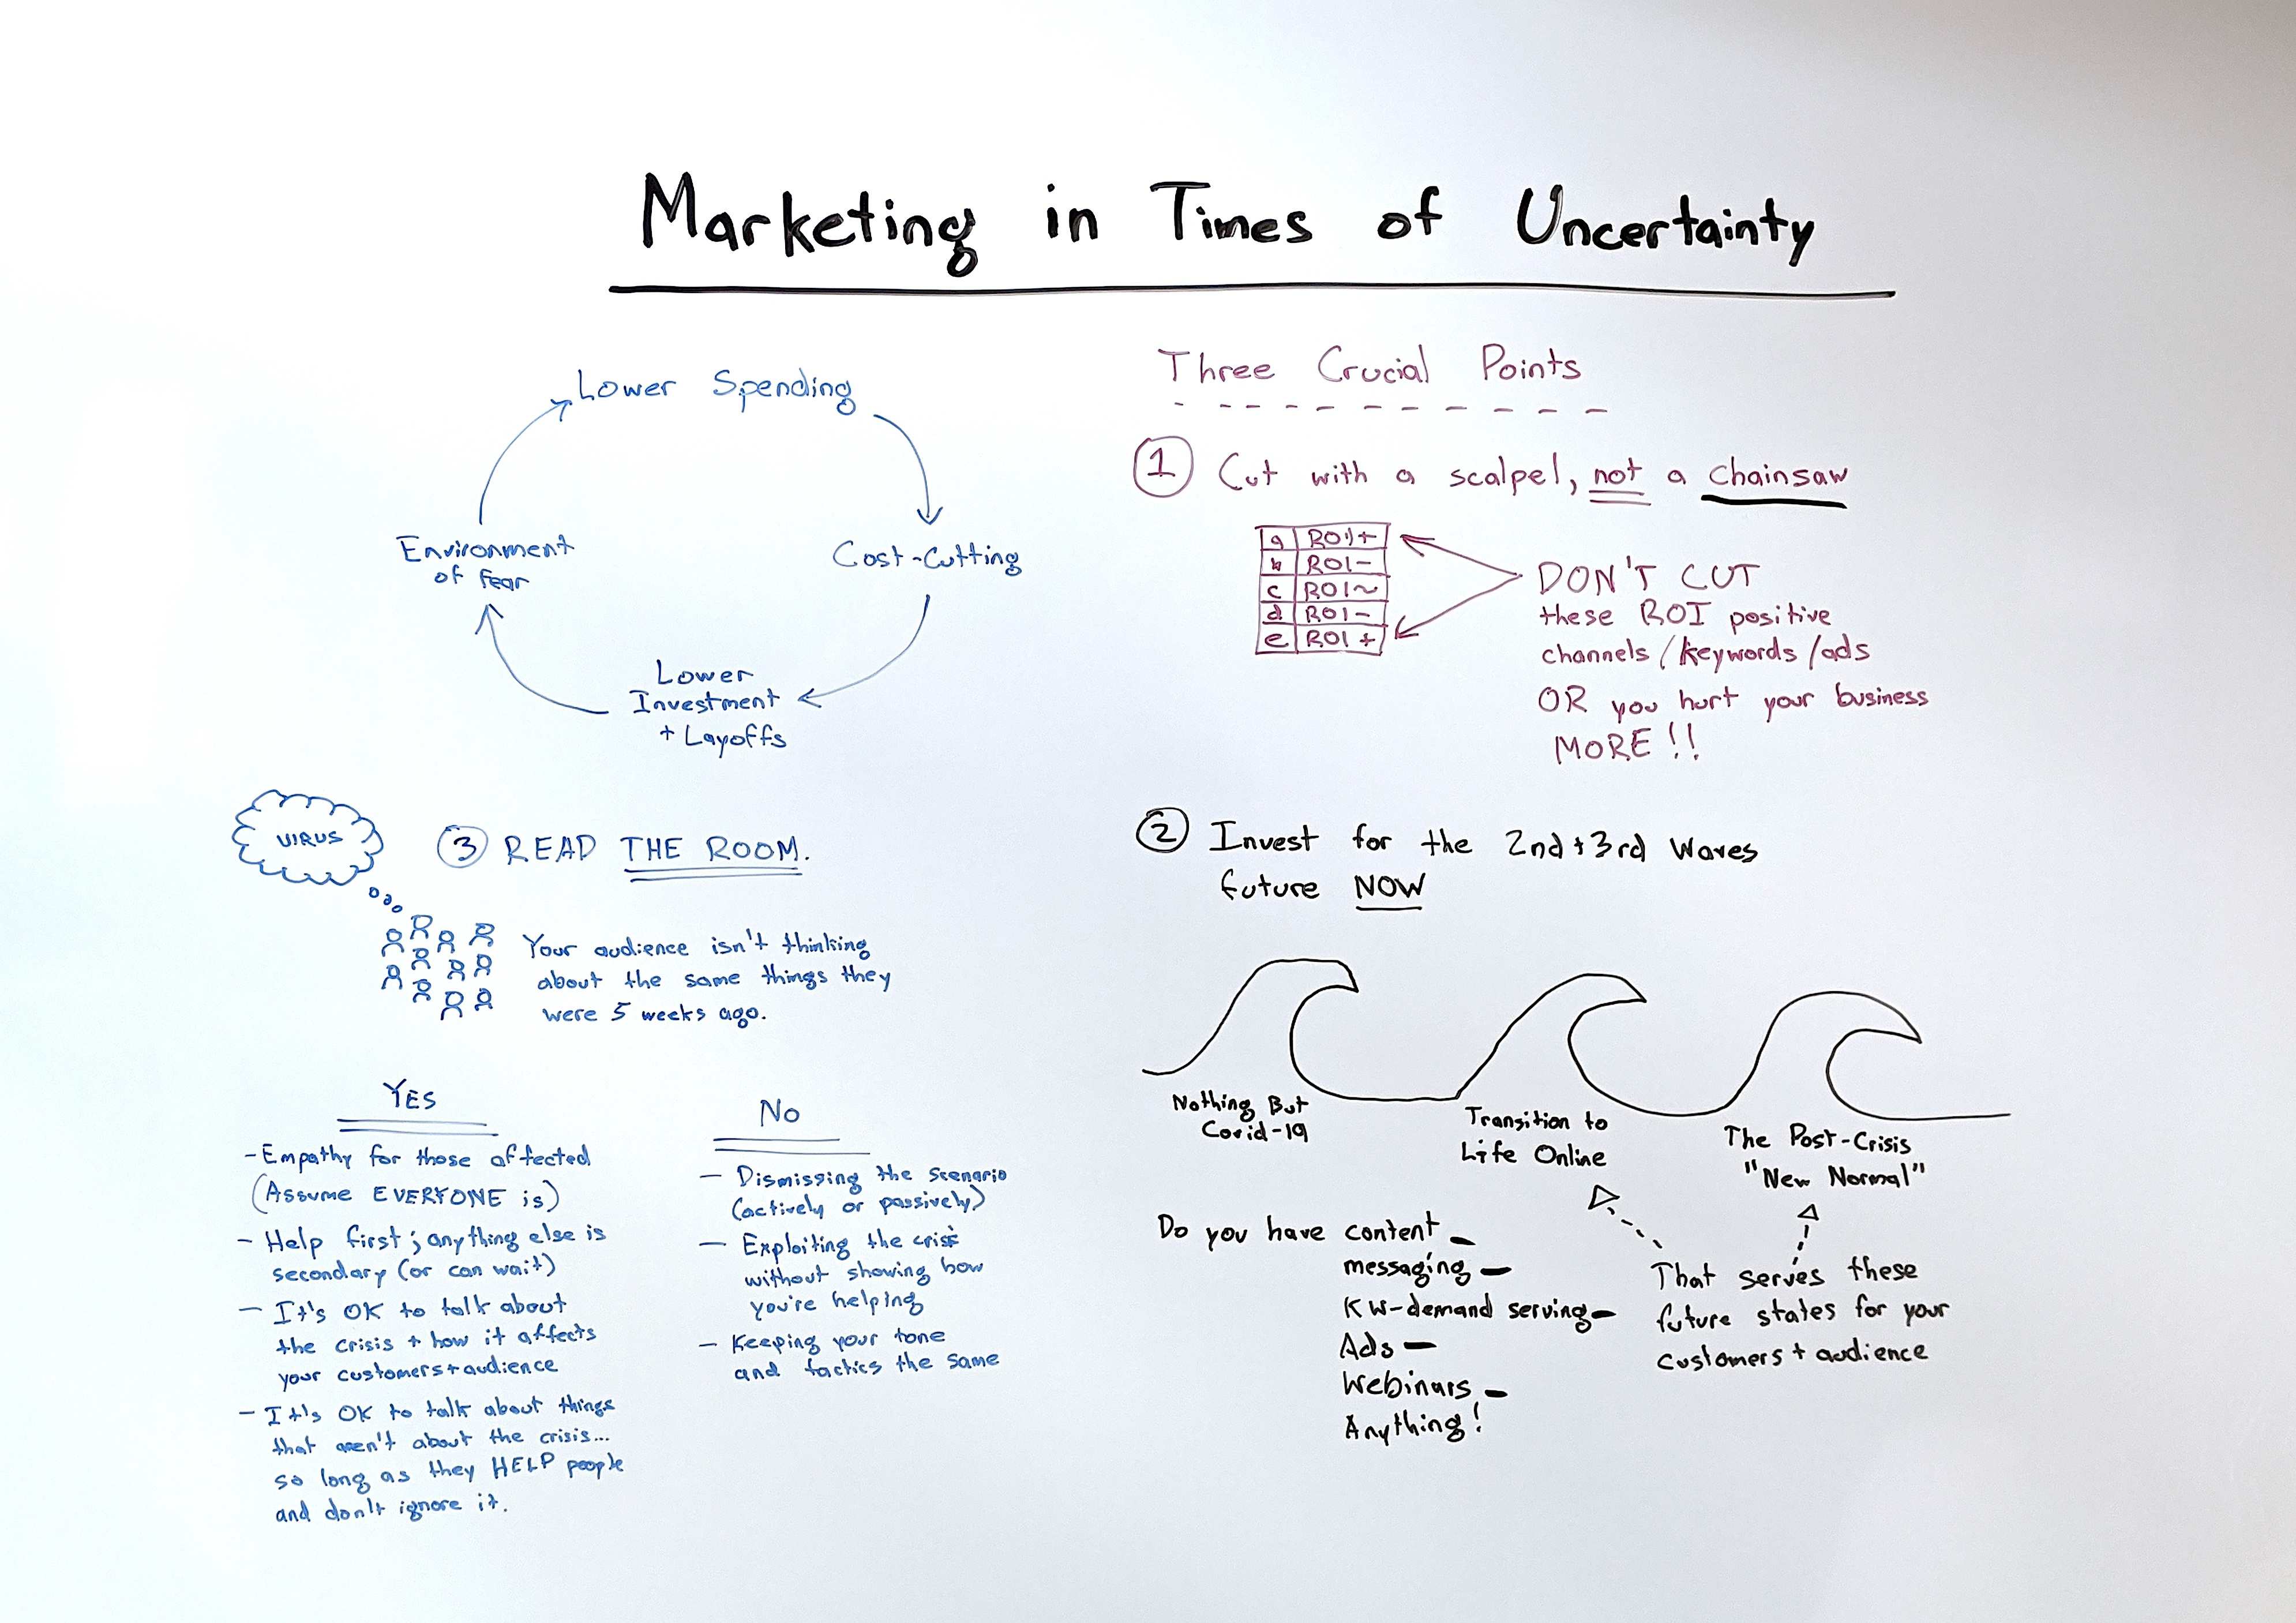 Marketing in Times of Uncertainty